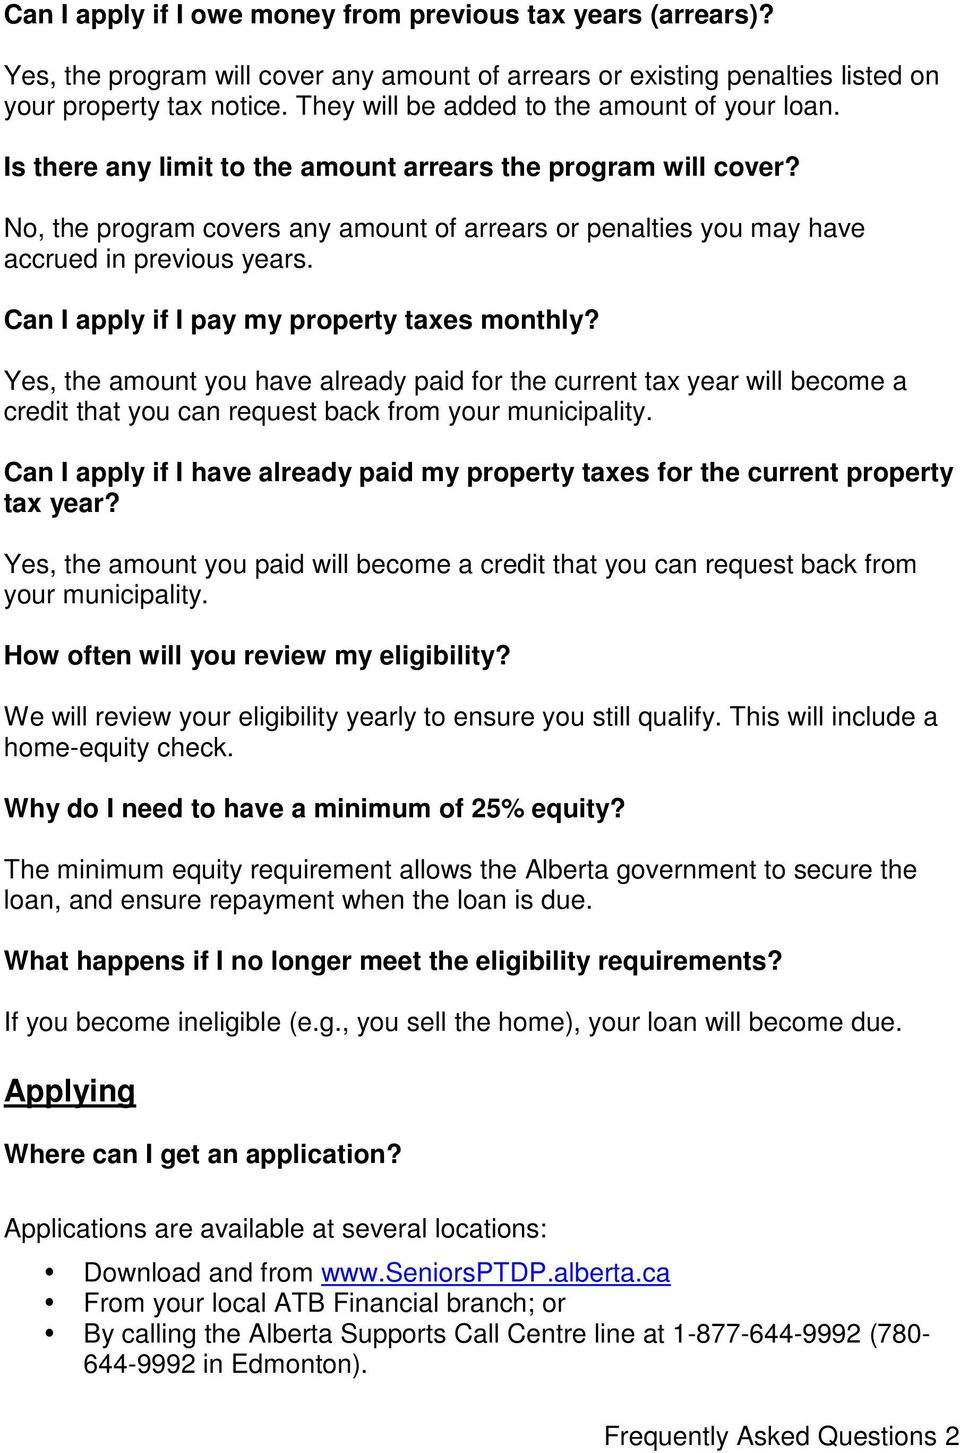 No, the program covers any amount of arrears or penalties you may have accrued in previous years. Can I apply if I pay my property taxes monthly?